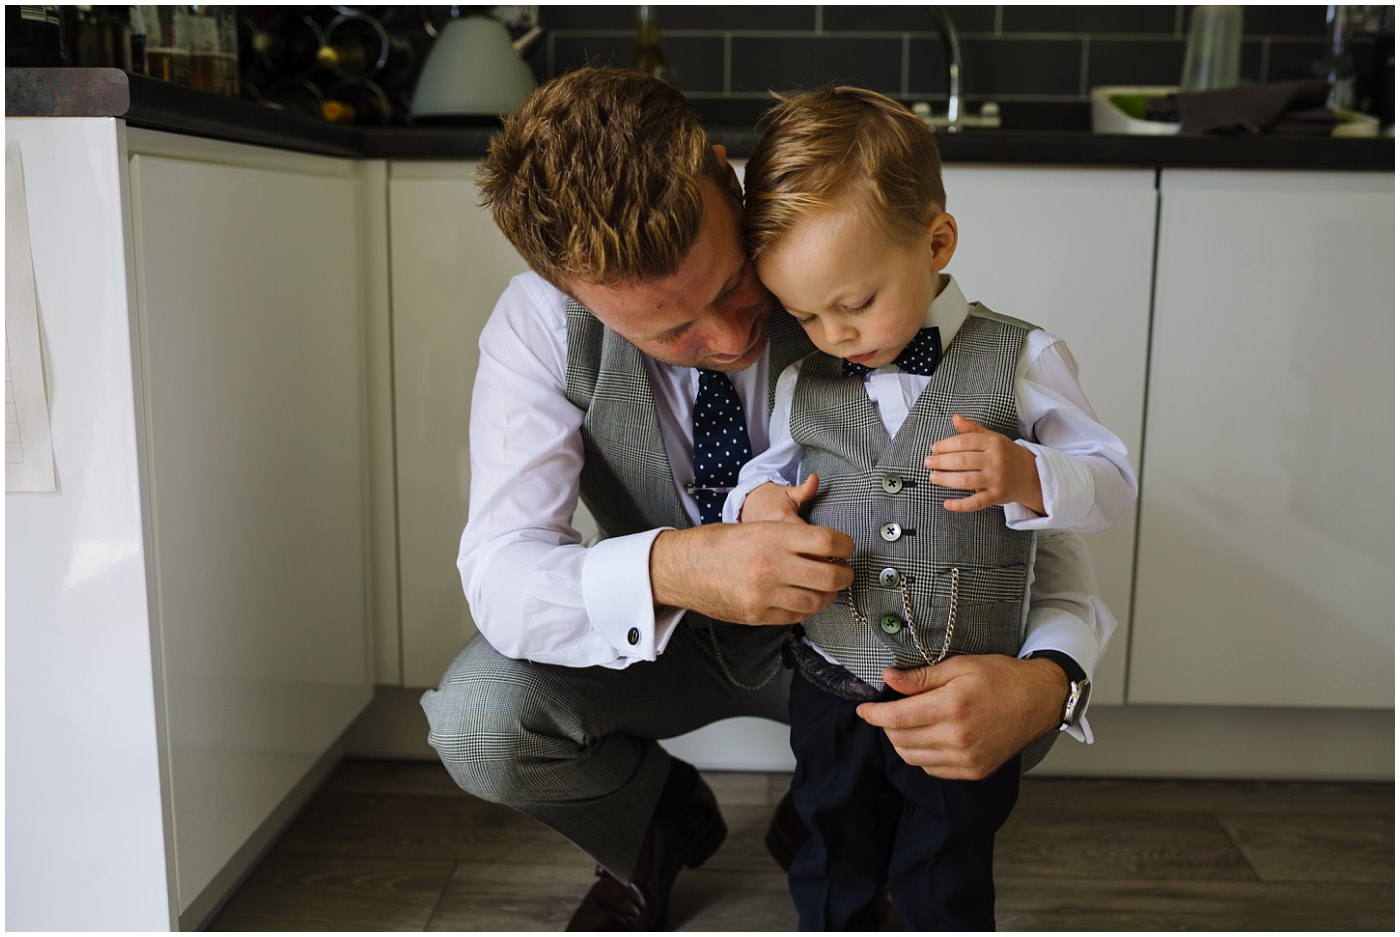 Groom and son in matching whitfied and ward suits